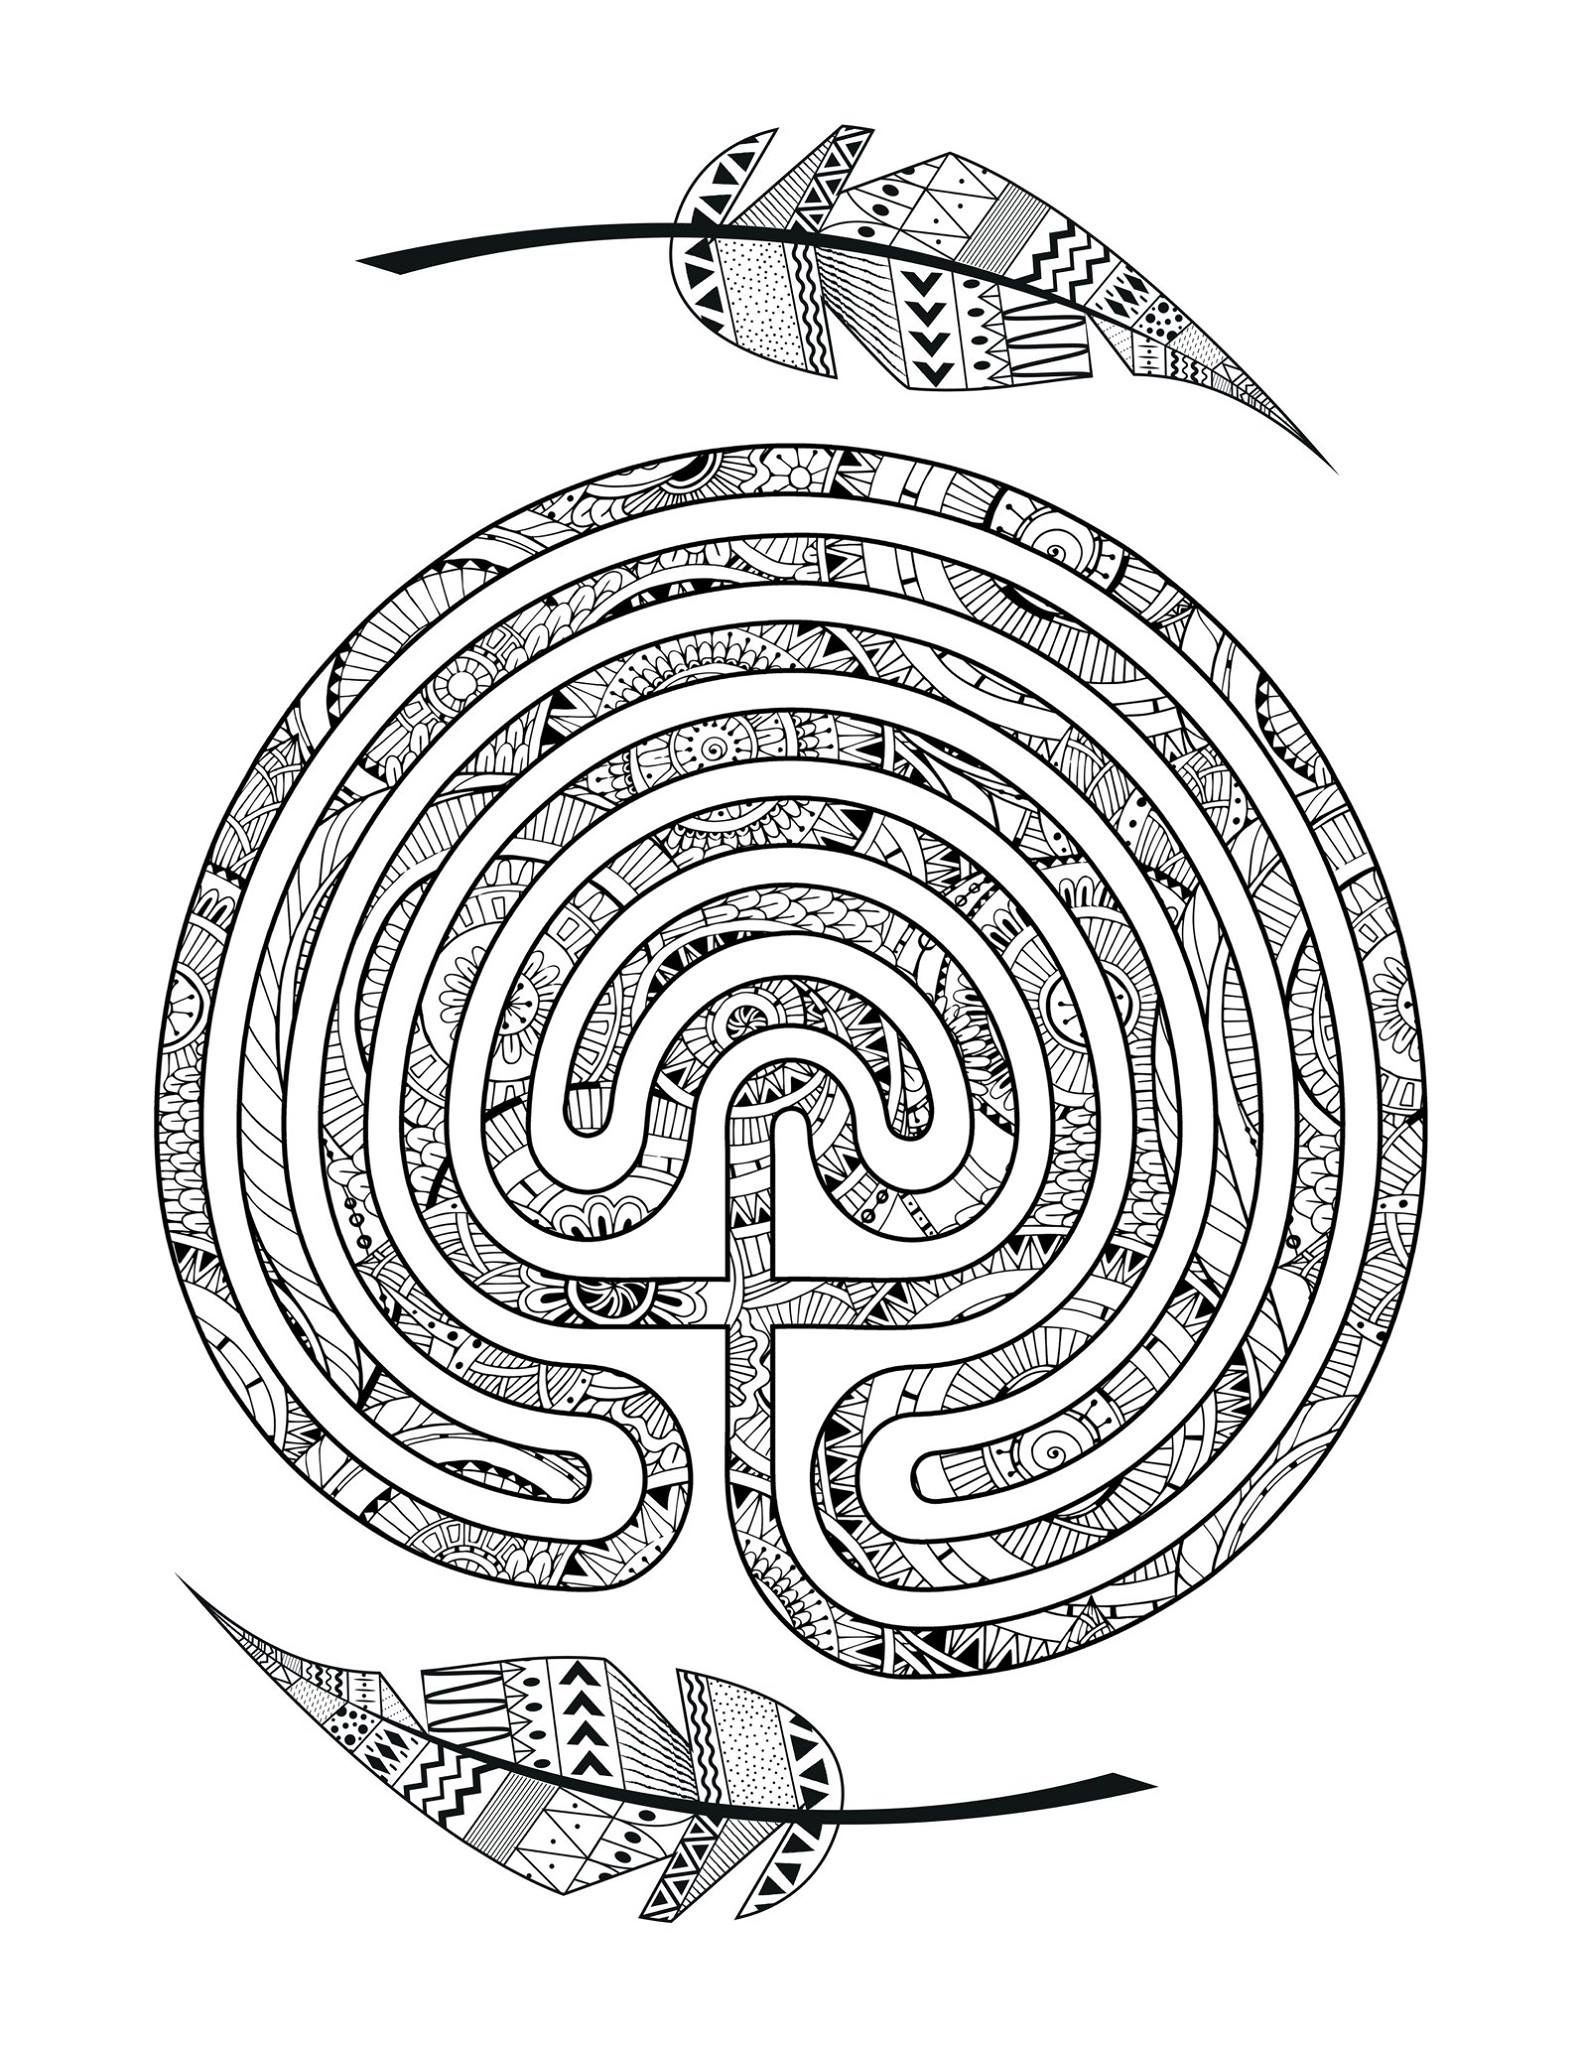 Connies Version Of The Common Ground Labyrinth Based On Vesica 5 Circuit Meander Pisces Symbol Was Submitted To Zero Labyrin